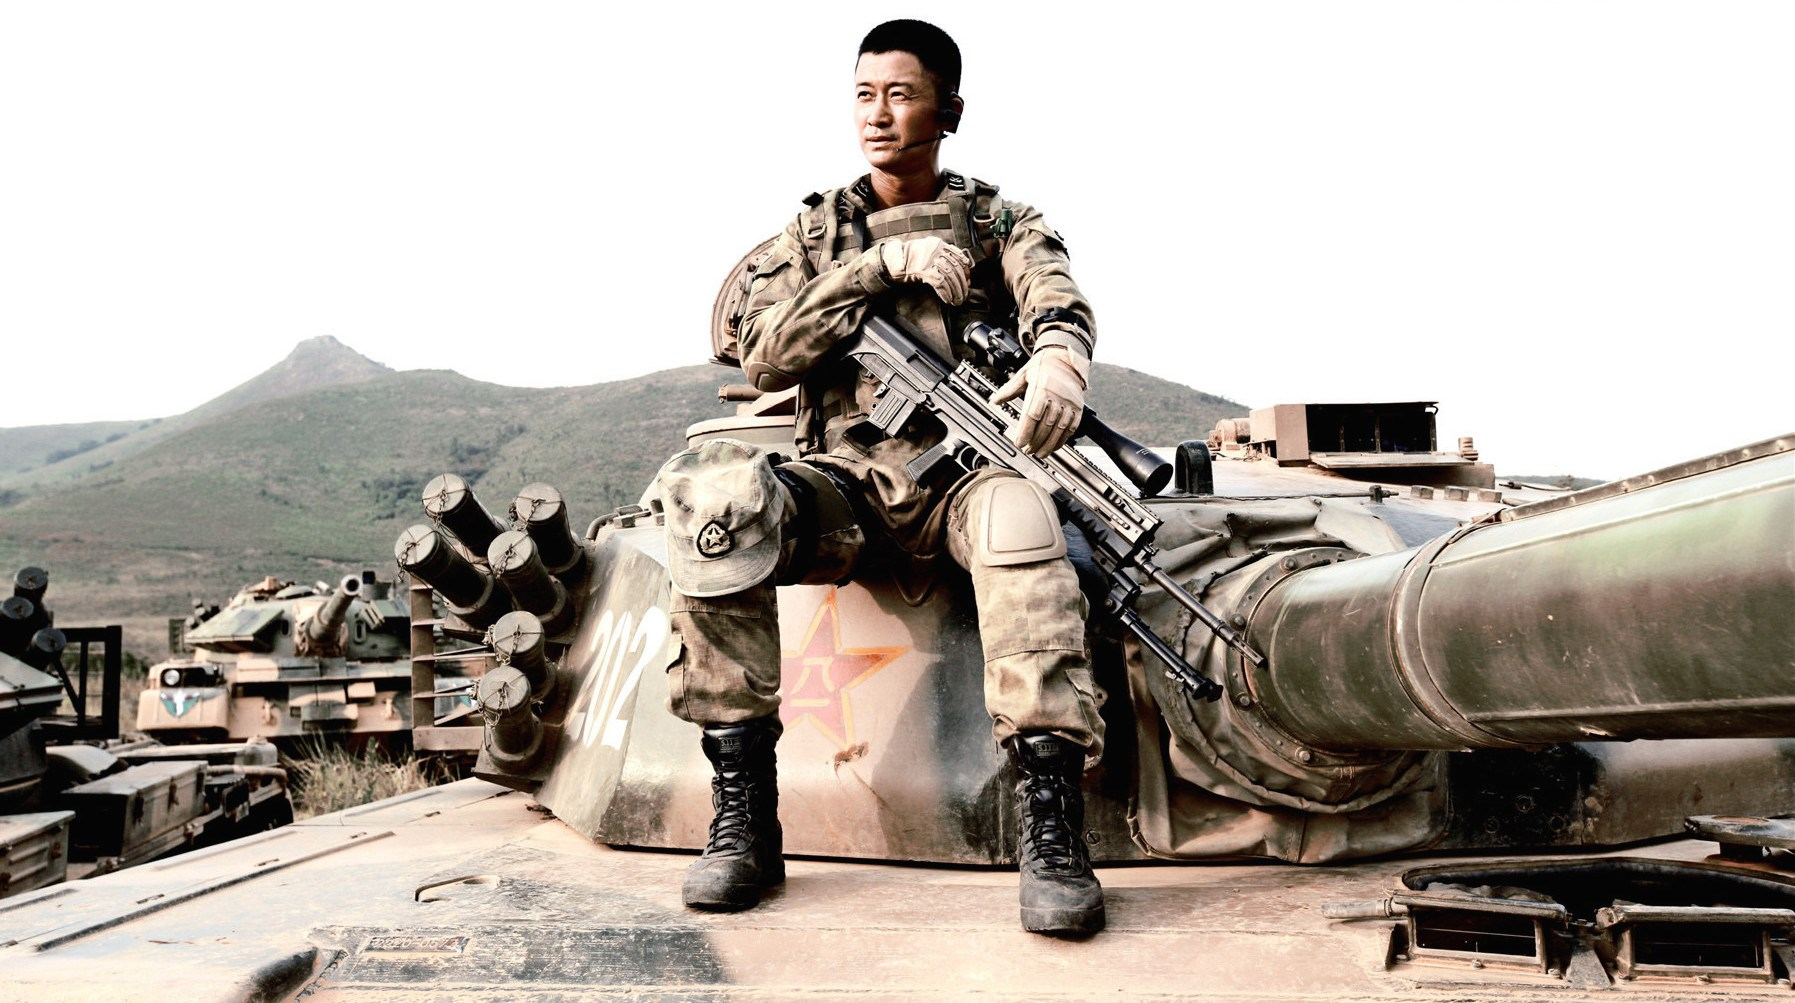 Action star Wu Jing has created the new image of a superhero who fights evildoers with fearless bravado.